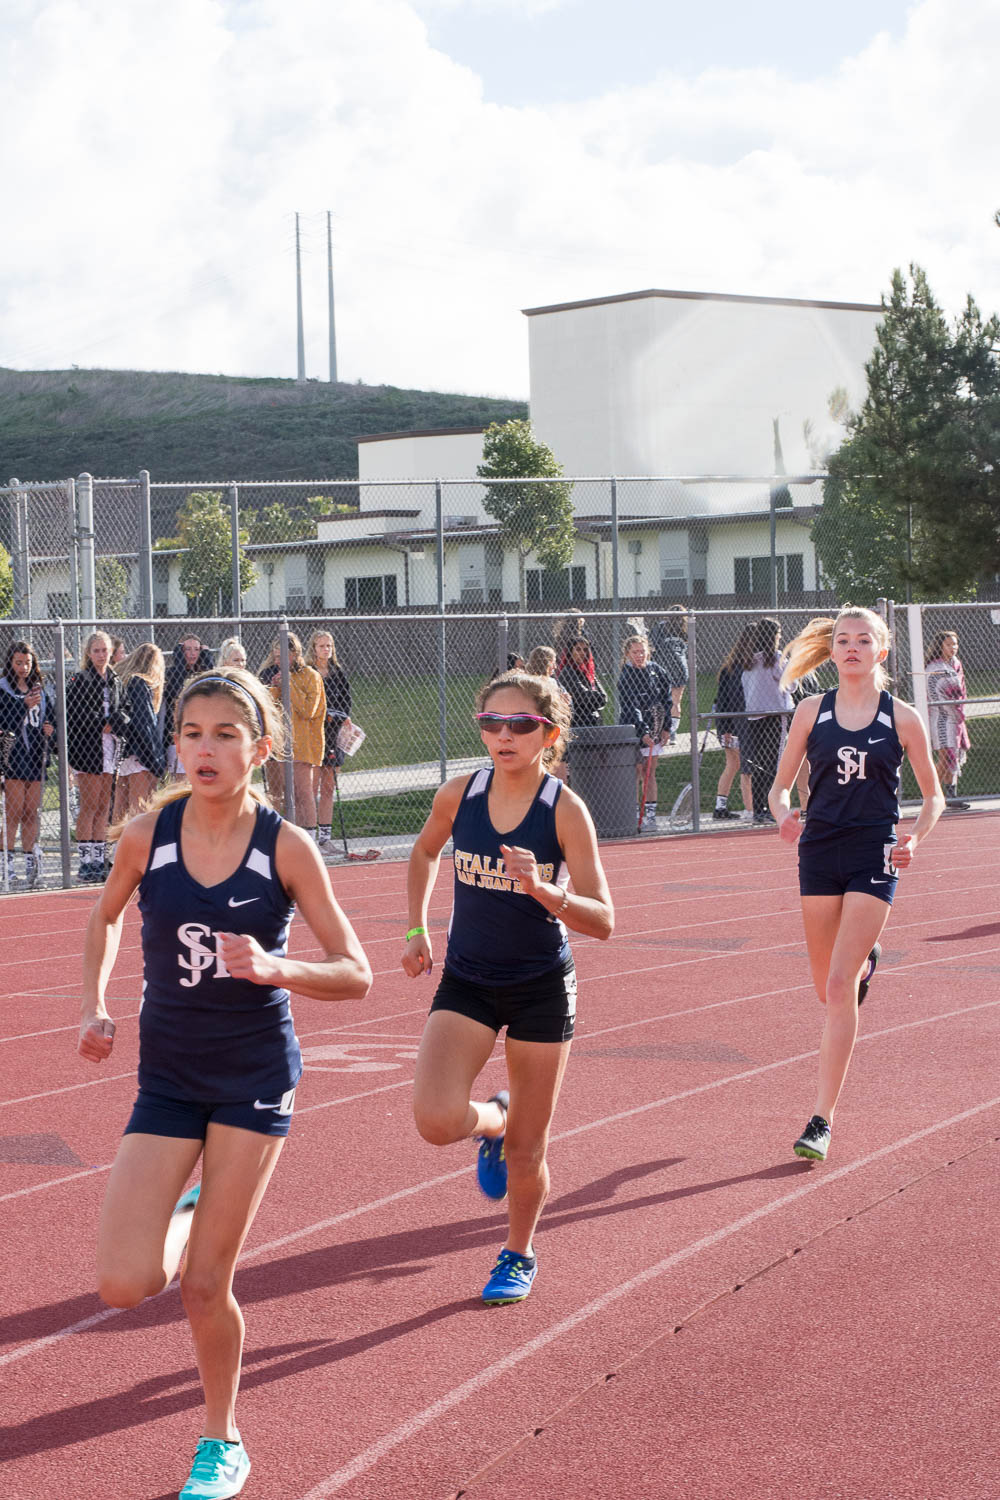 Shirin Dunker (9), Isabella Zuniga (10), and Emili Peo (9), finish in first, second, and third place in the Varsity 1600 meter run at the intrasquad track meet on February 21 in the Badlands.